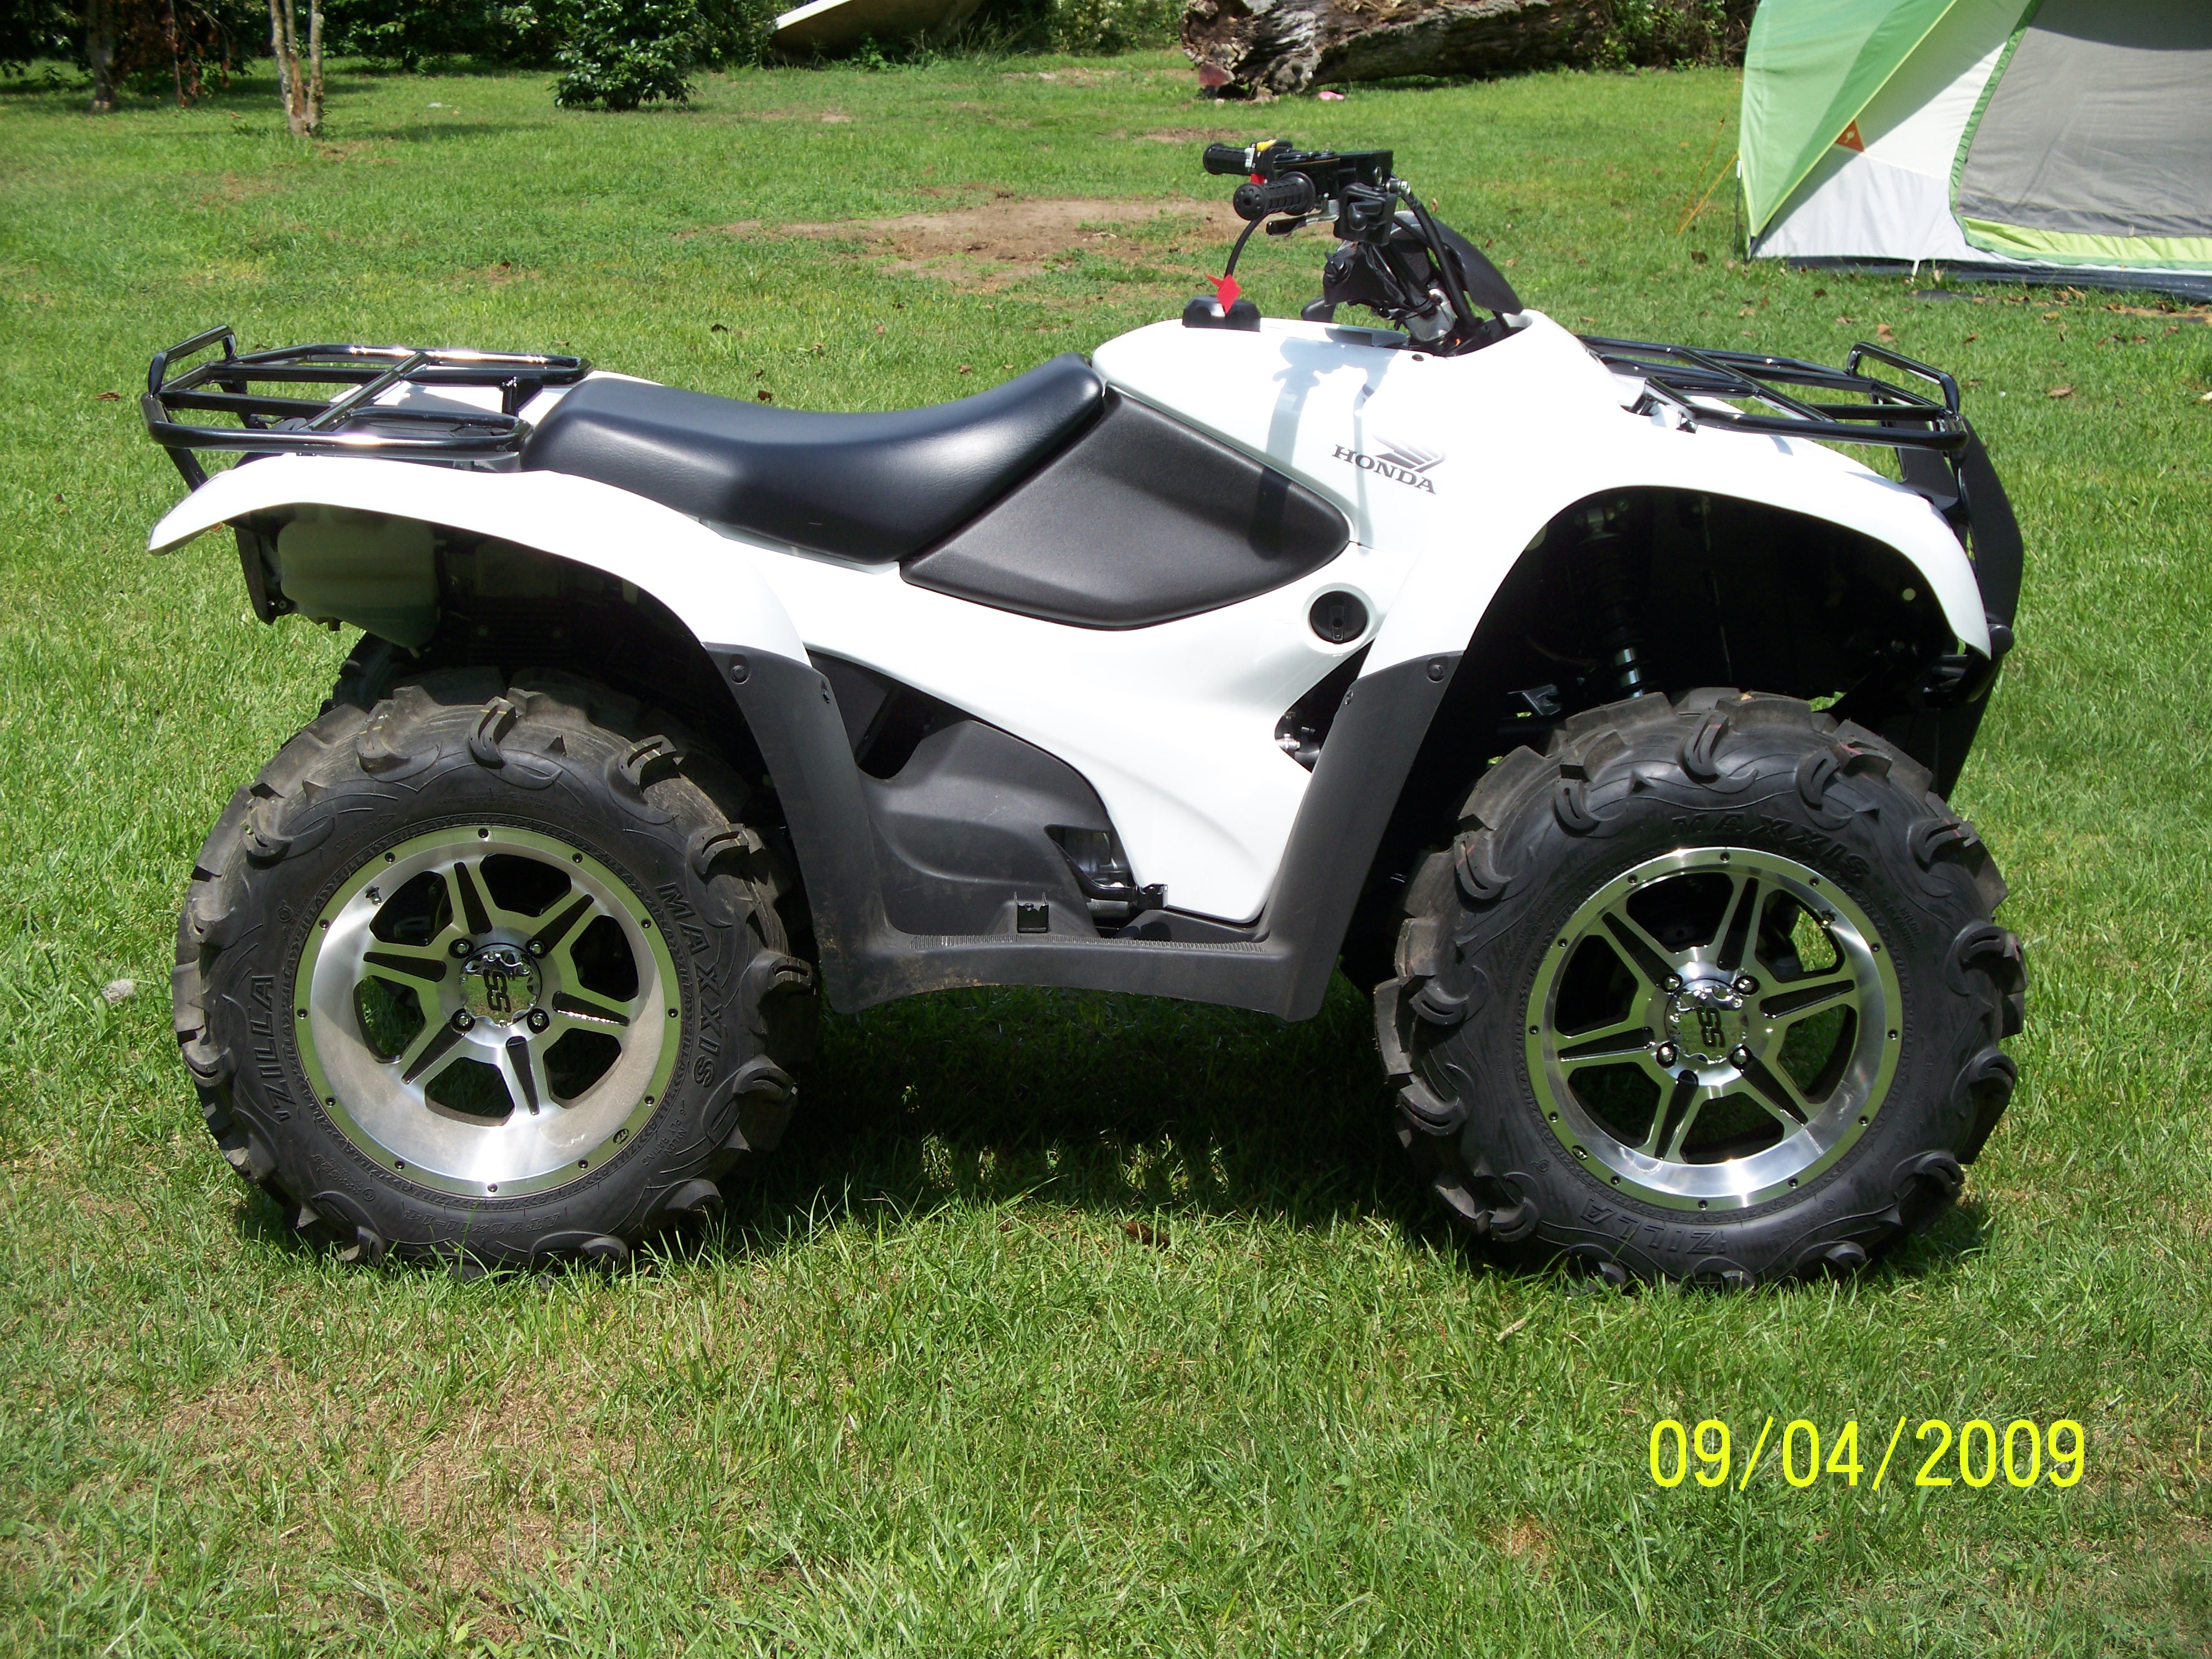 rancher with 26's - Page 2 - Honda Foreman Forums ...